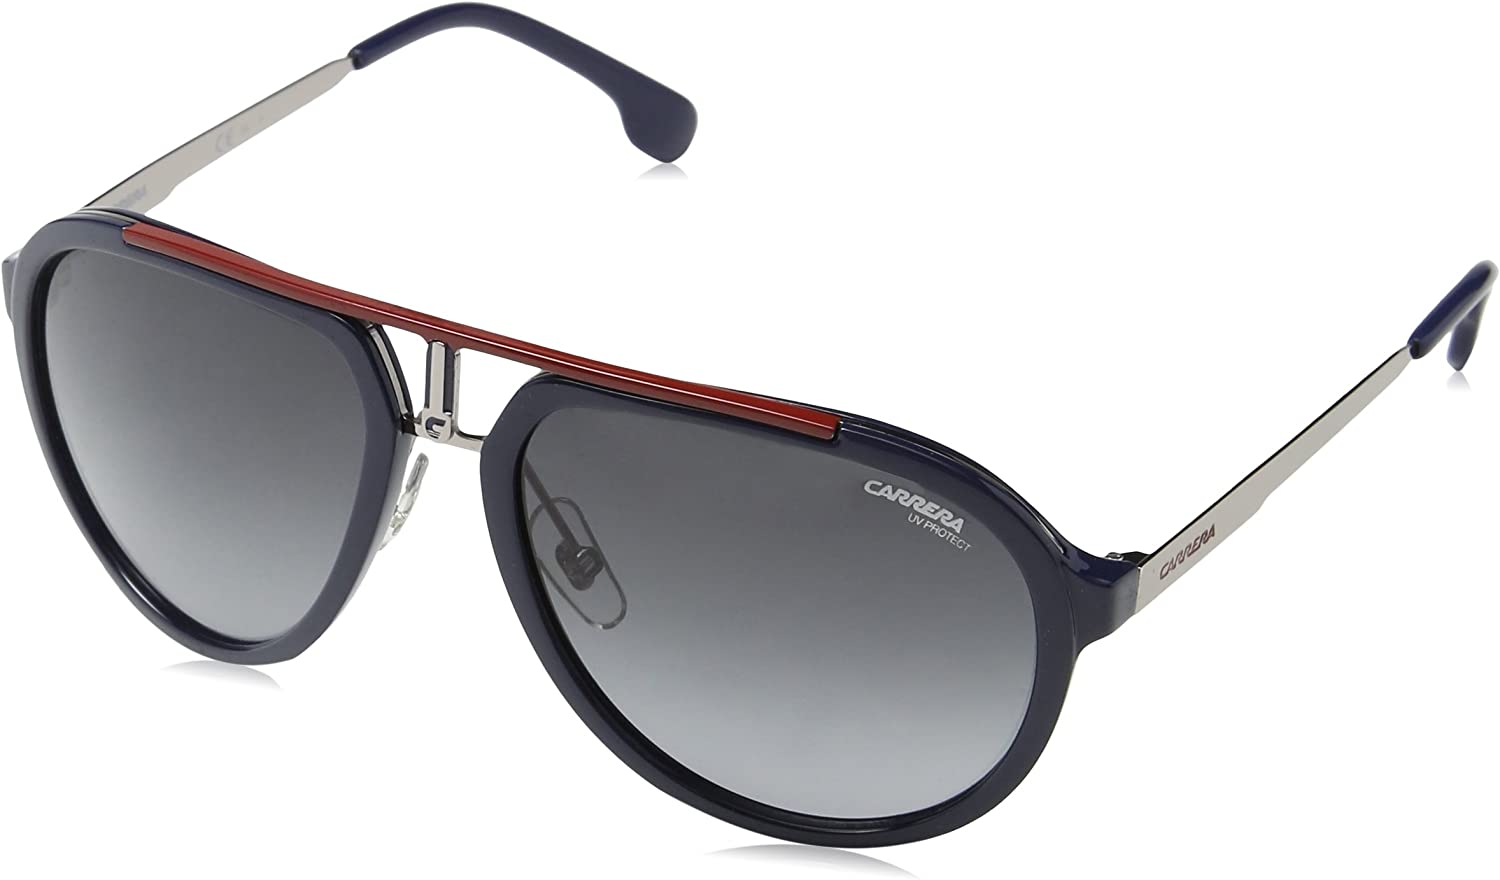 Carrera 1003 s Aviator Sunglasses, blueE RUTHENIUM 58 mm